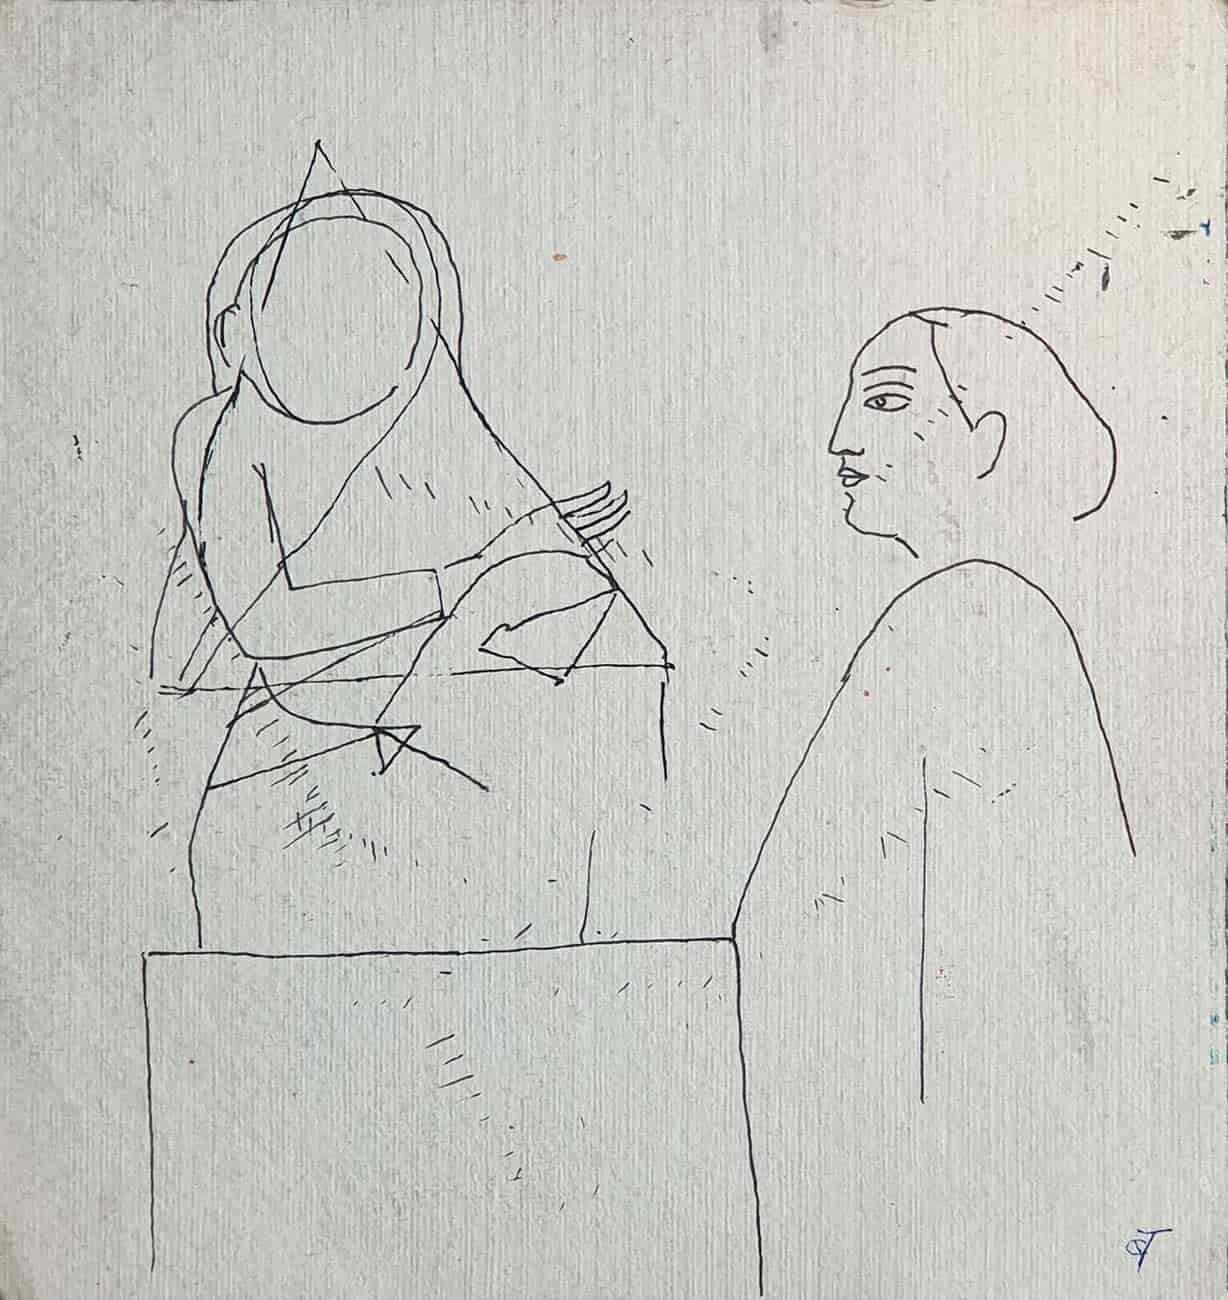 sketch-of-two-woman-drawing-on-paper-7.75×8.25-inches-min